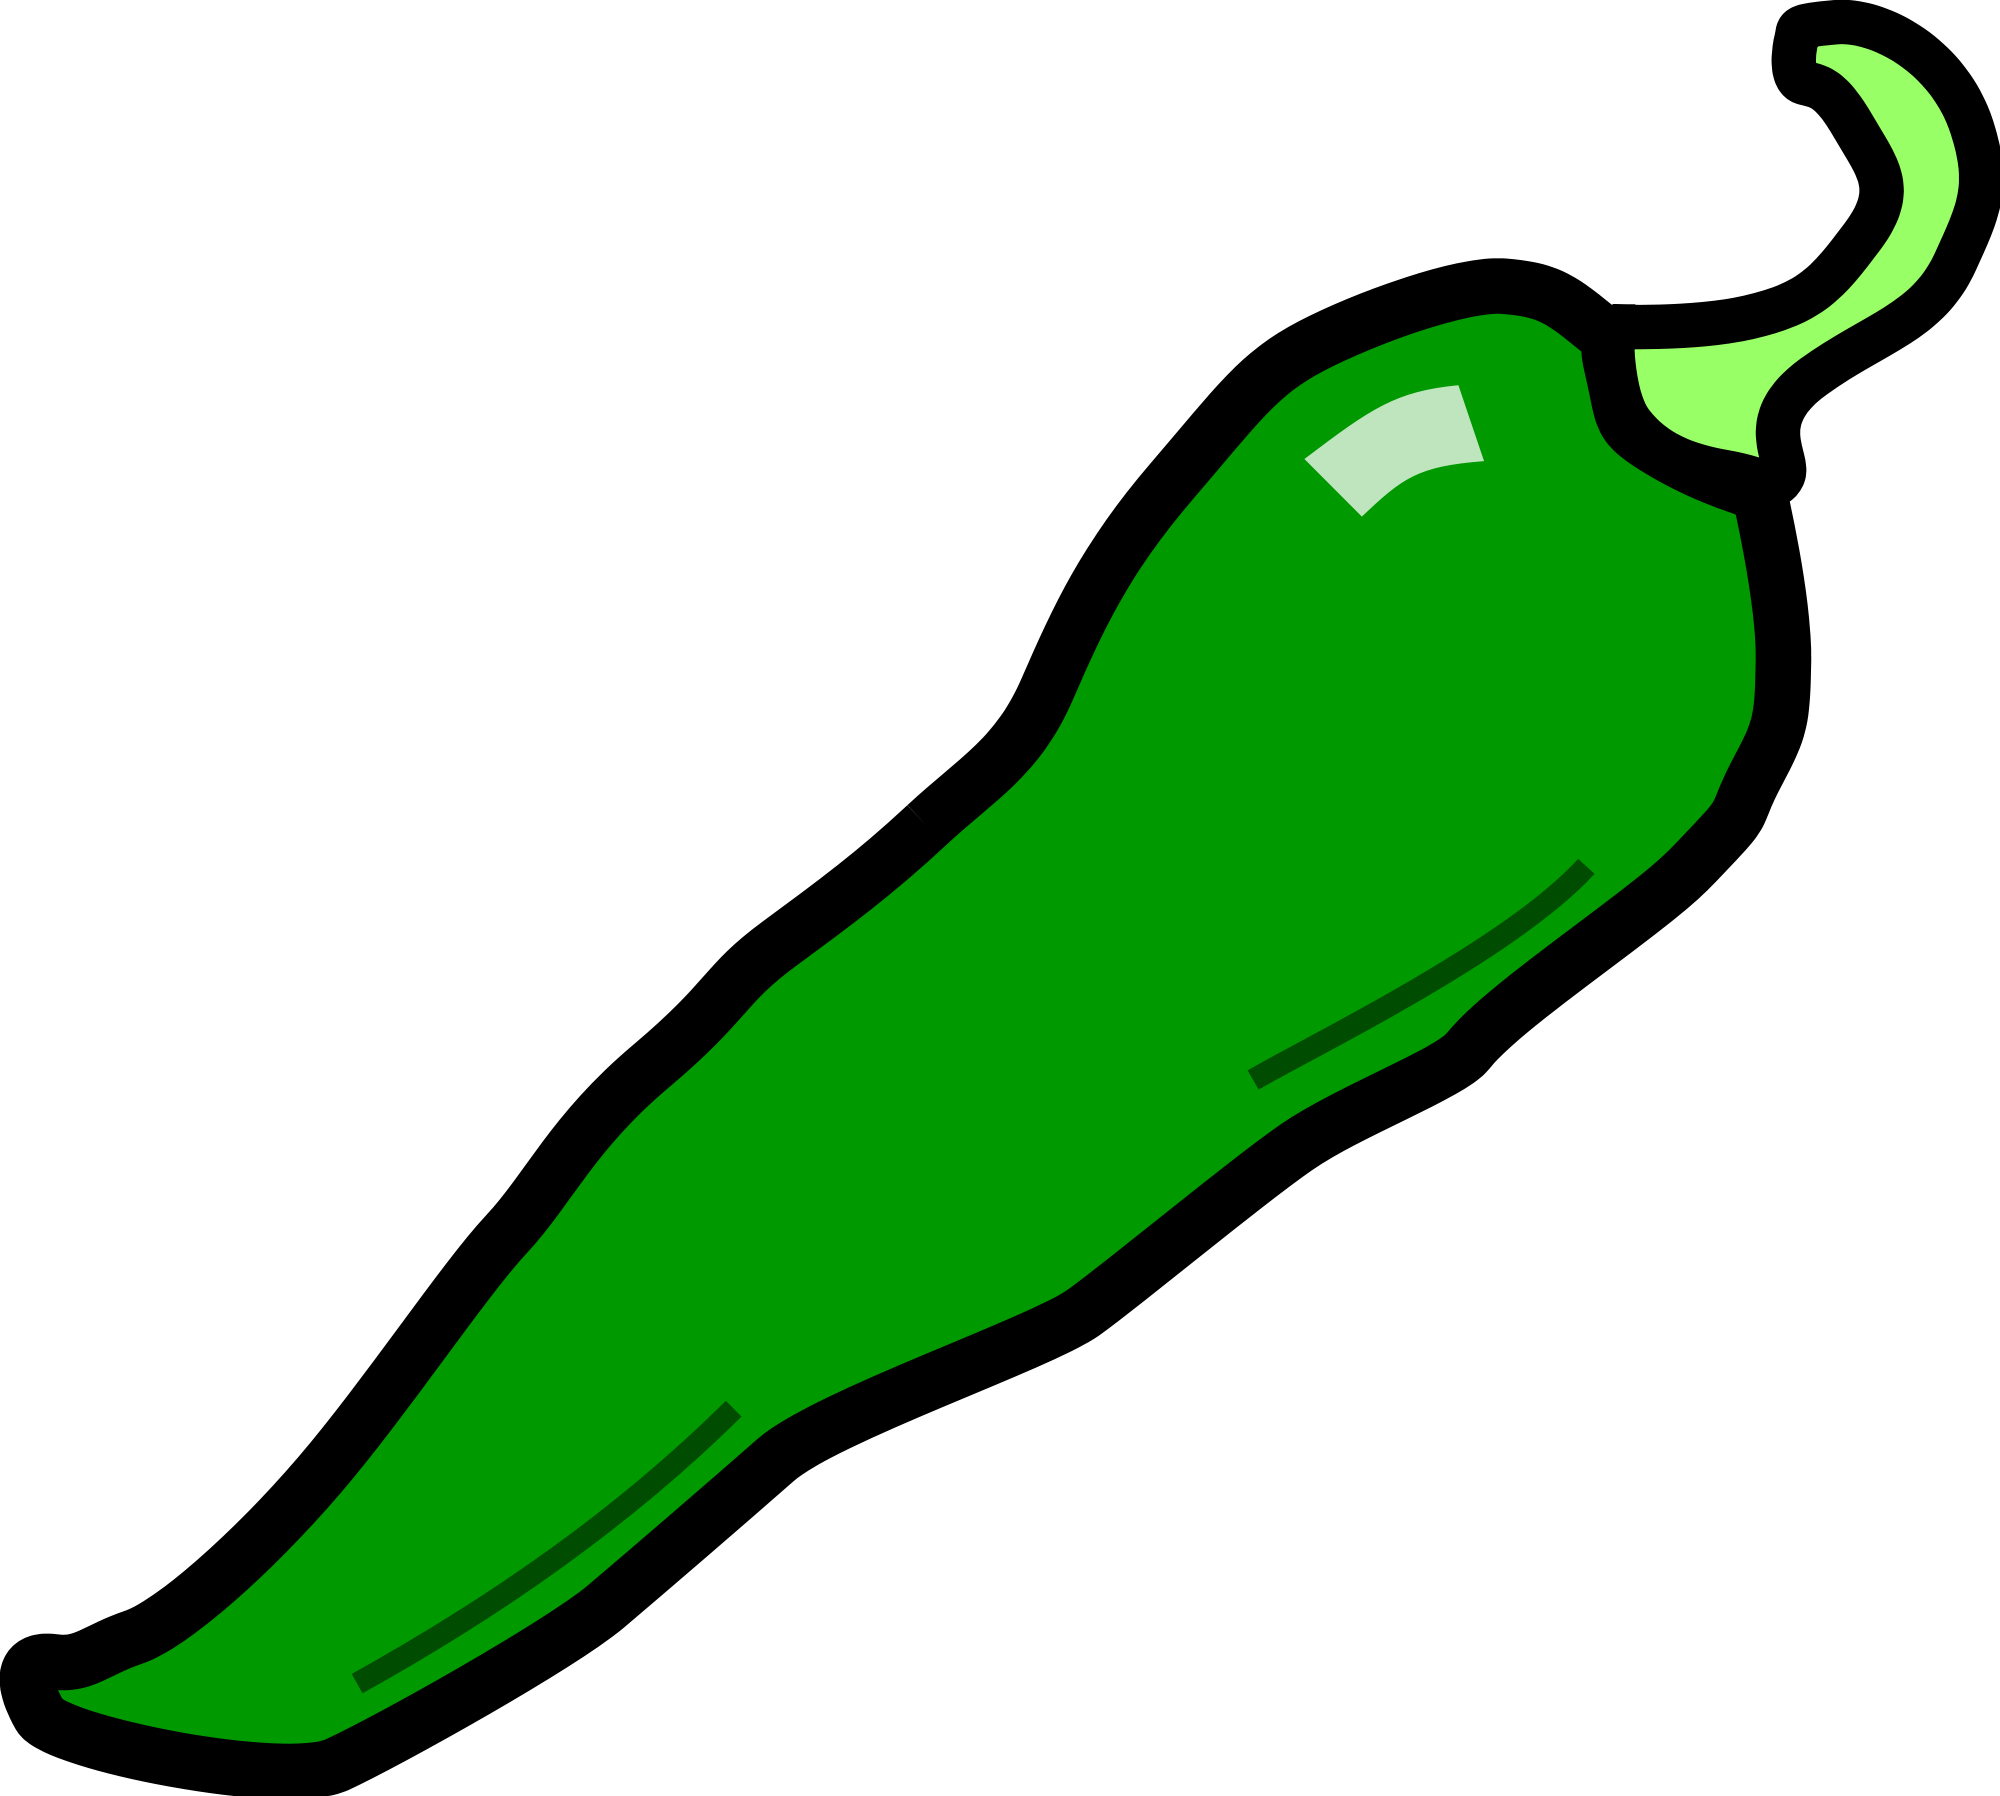 Green clipartix. 1 clipart chili